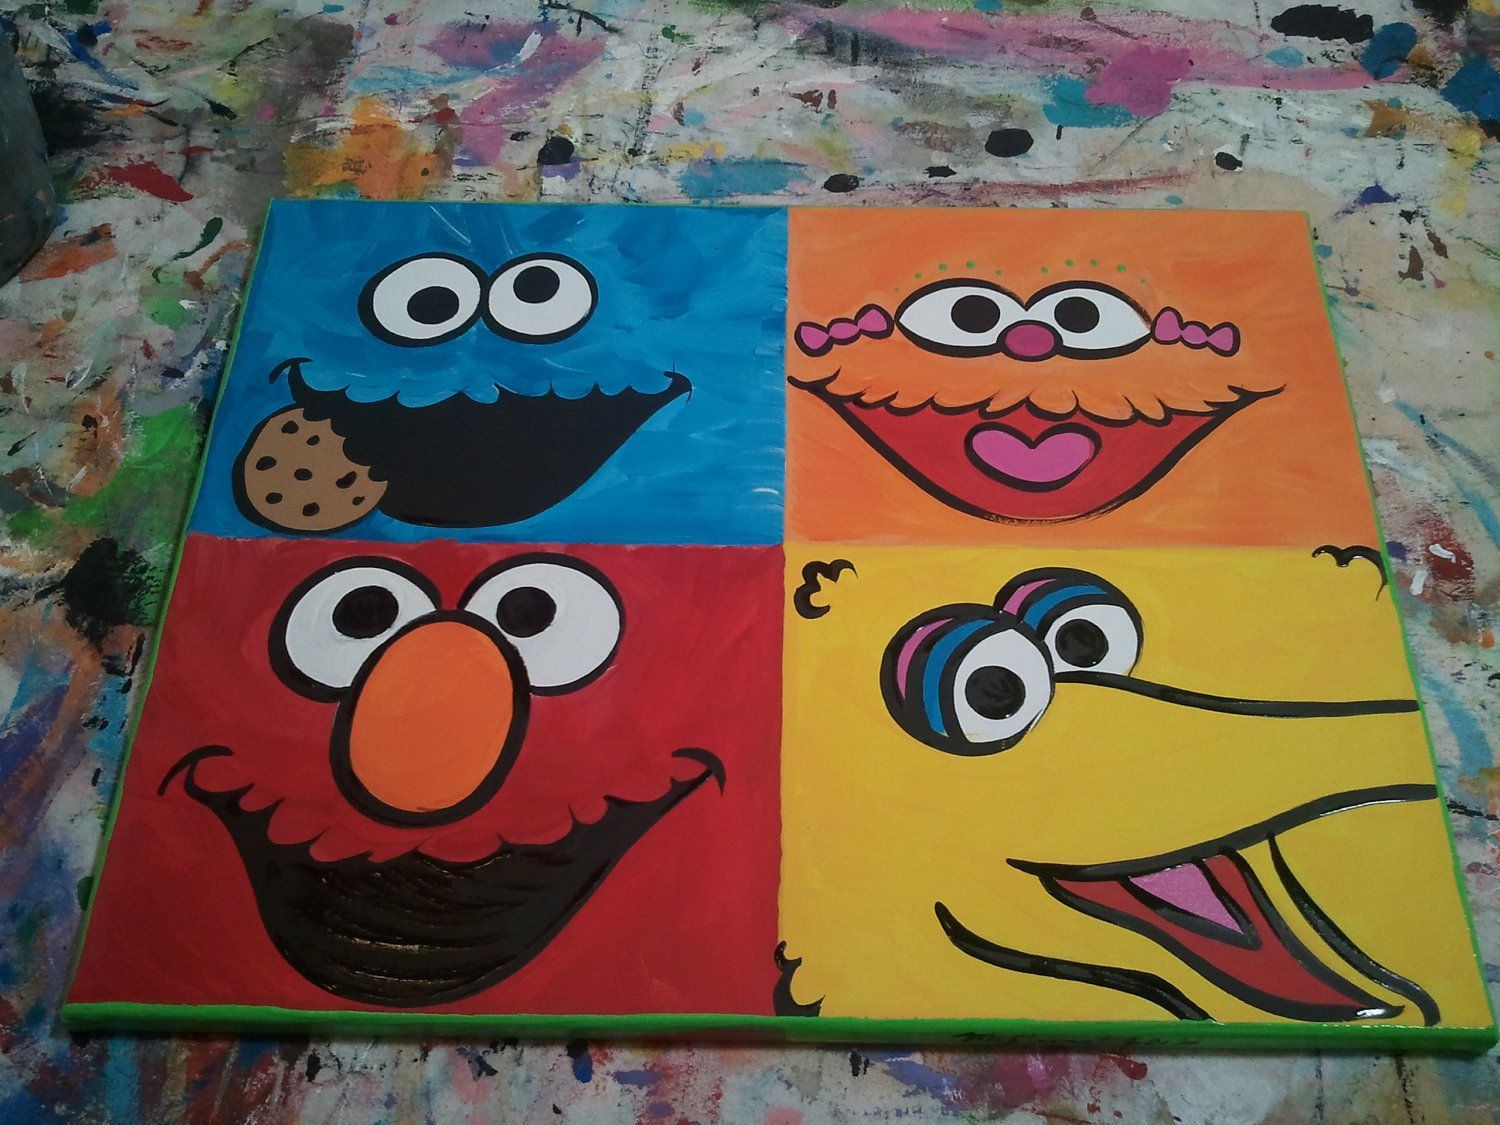 Sesame Street Bedroom Decorations 17 Best Images About Sesame Street Room On Pinterest Toy Bins